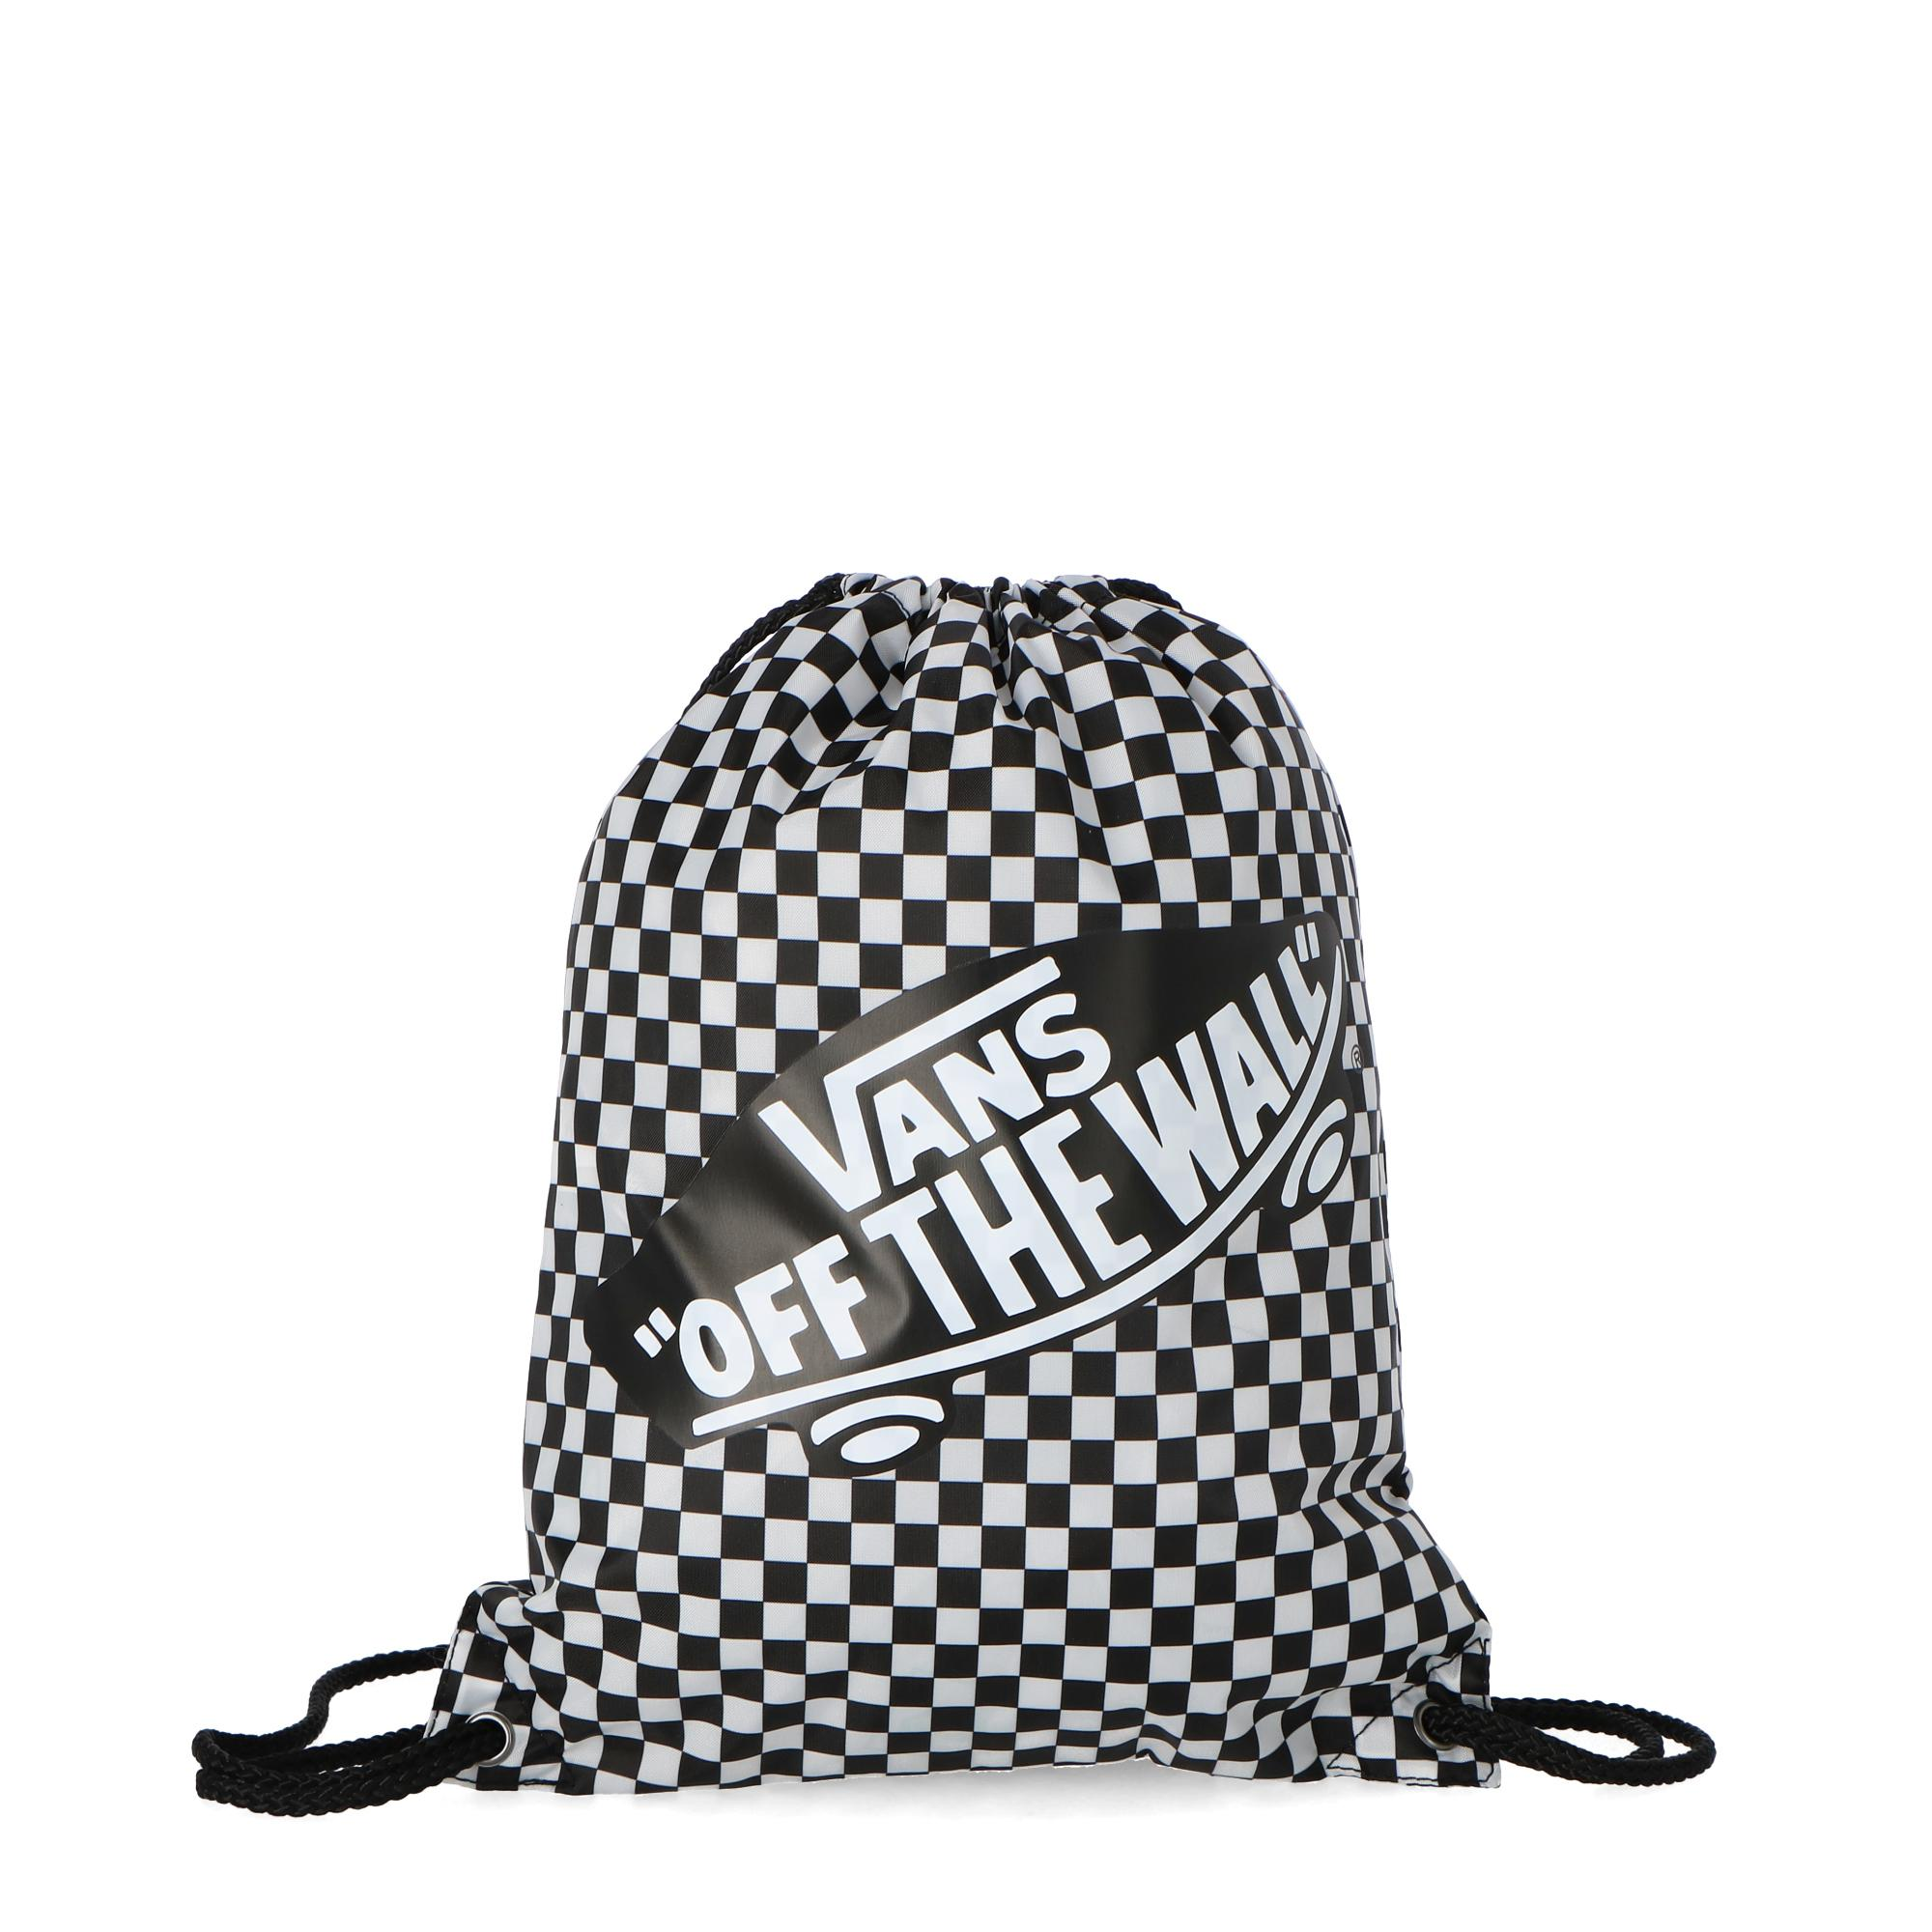 13f7051098 Vans Benched Bag Black white Checkerboard